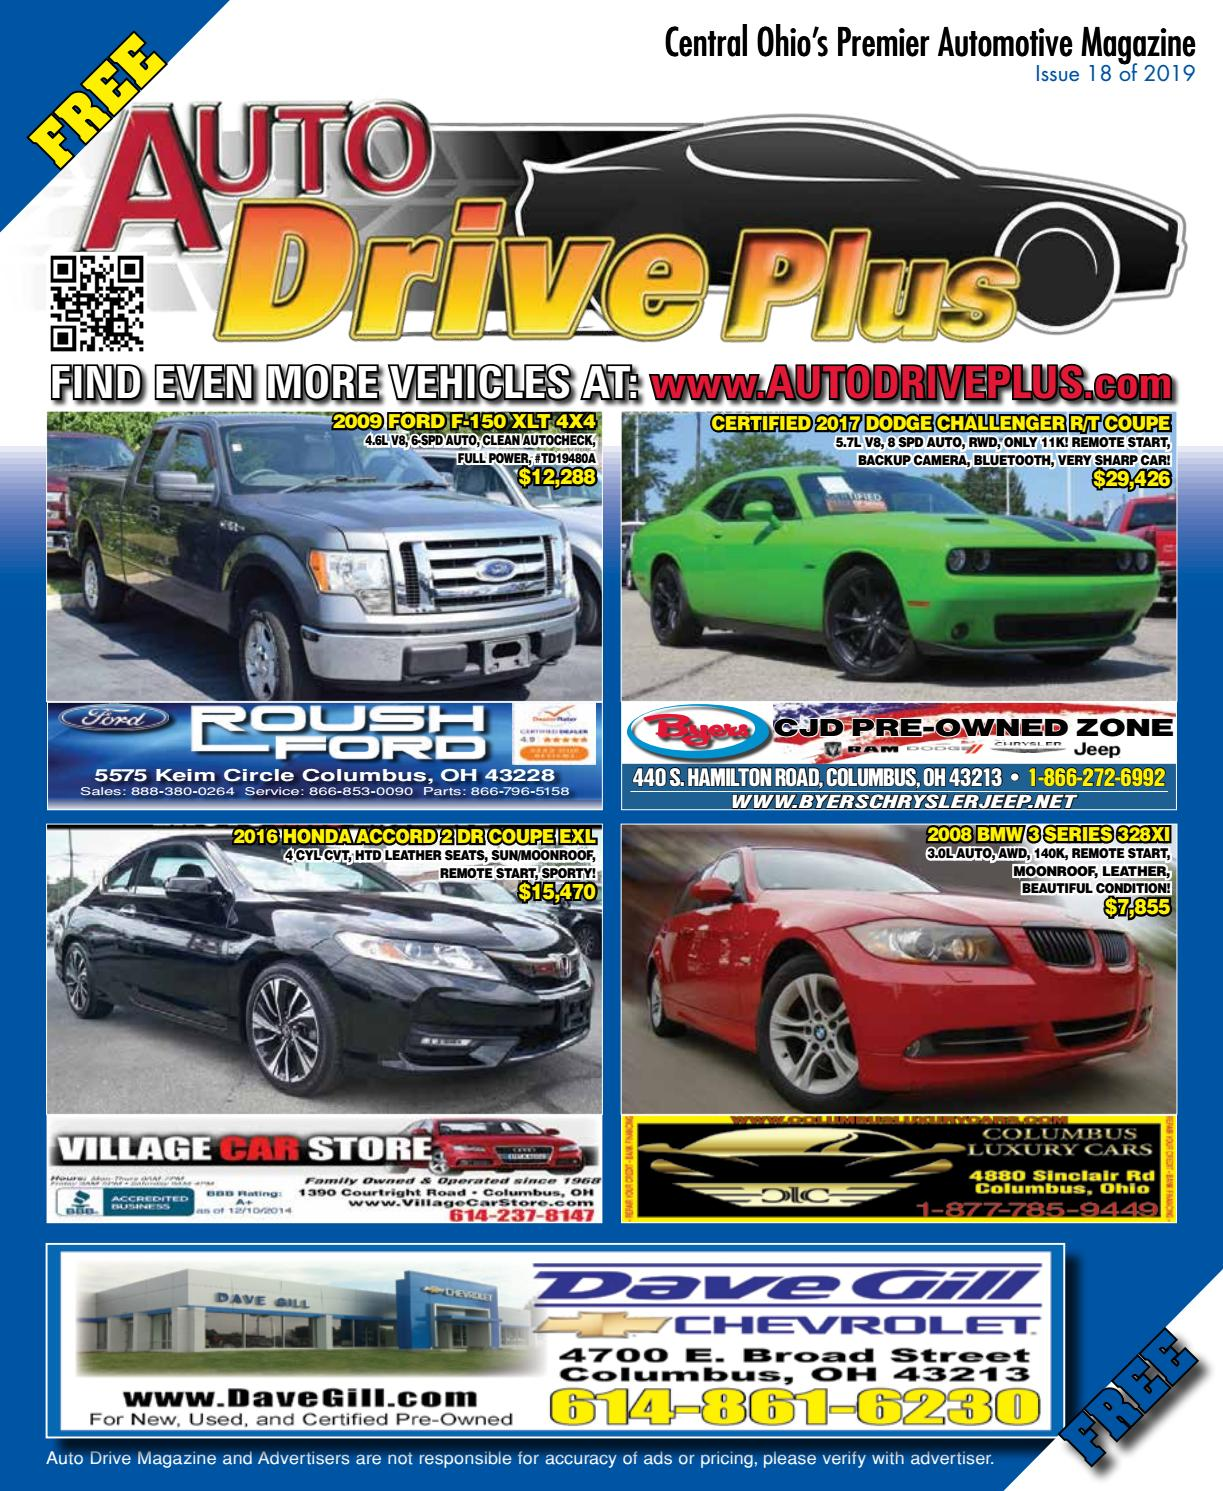 Keim Pre Owned >> Auto Drive Plus Magazine Issue 18 2019 By Autodriveplus